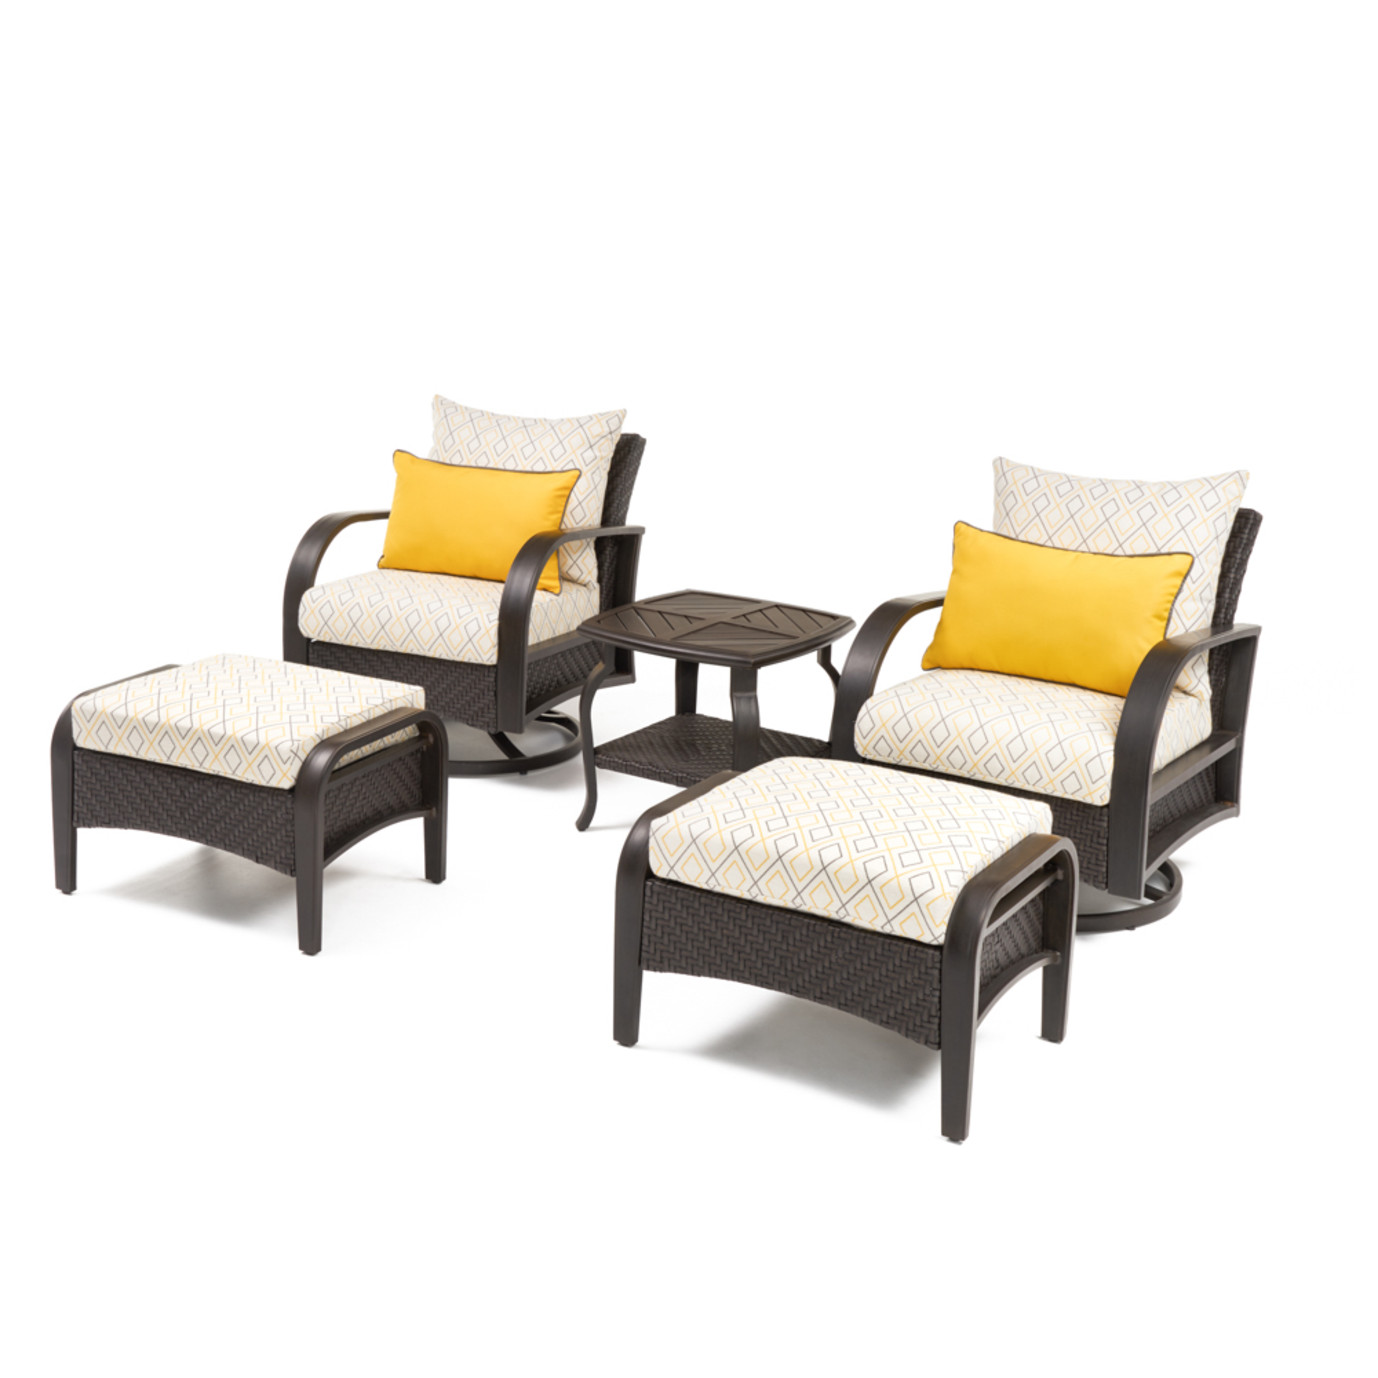 Barcelo™ Deluxe 5pc Motion Club & Ottoman Set - Sunflower Yellow